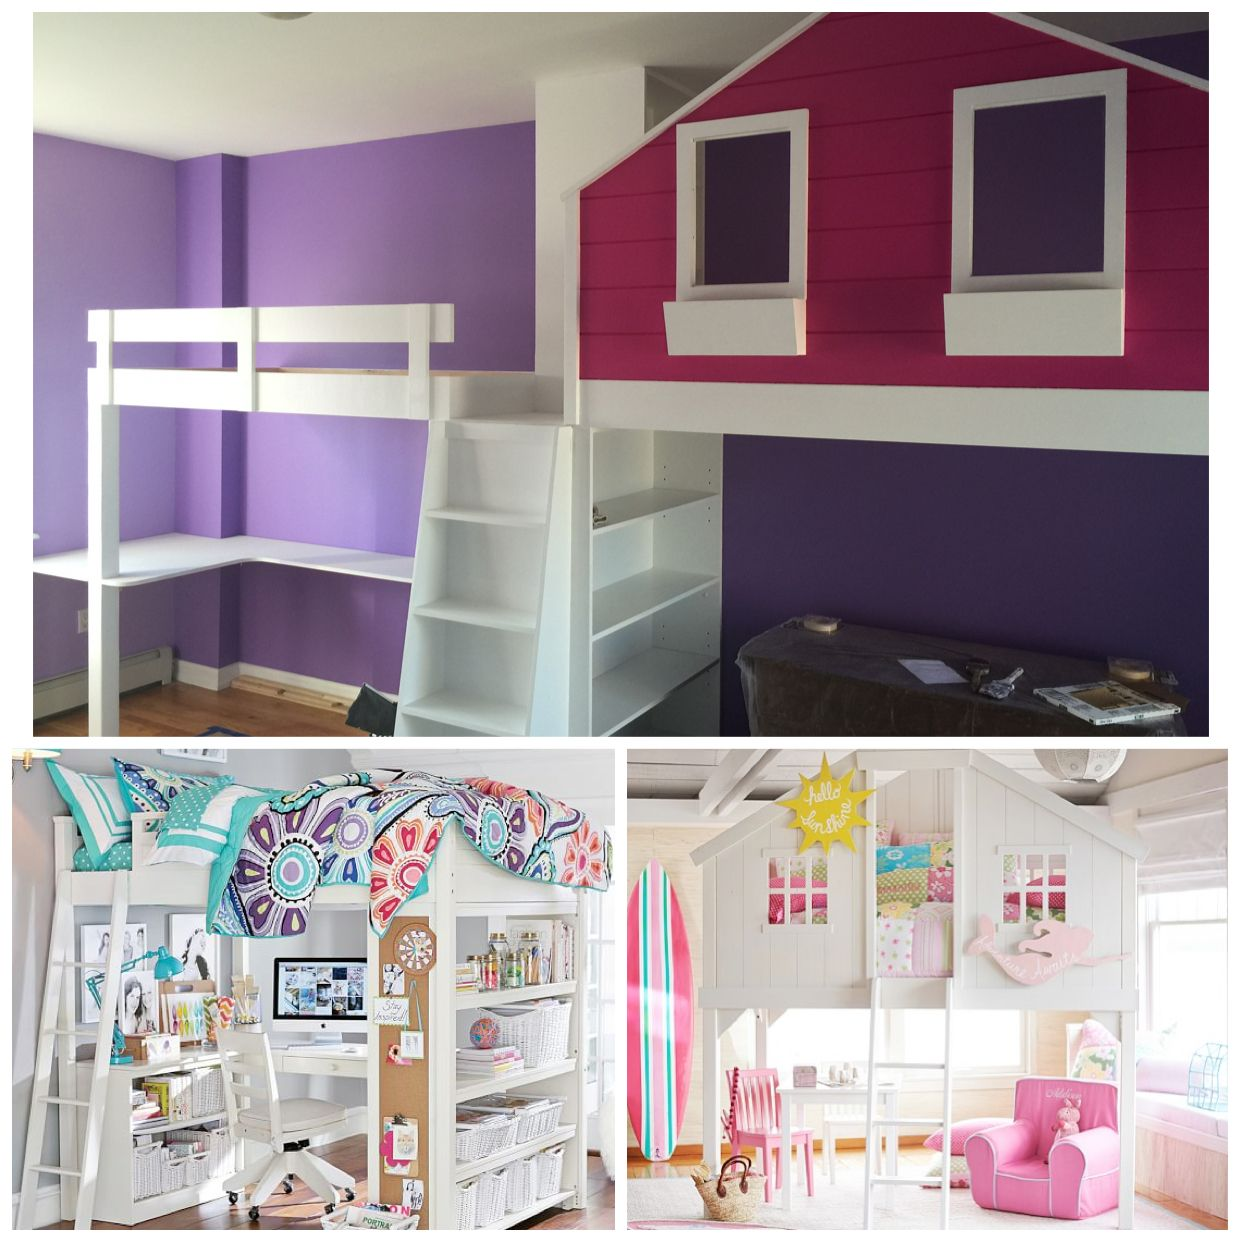 AND THE WINNER IS.....Having chosen two beds they both loved (bottom images) and considering the shape of their room - KidKlass Spokeskids Wiyot & Stoney made this Compromise - a single unit with two separate spaces separated by floor to ceiling book cases now everyone has a space they love and Wiyot has a fire pole exit even though she wanted to fit in a slide...thoughtfully designed by Igor Videgain, Videgain Designs., Brooklyn NY.